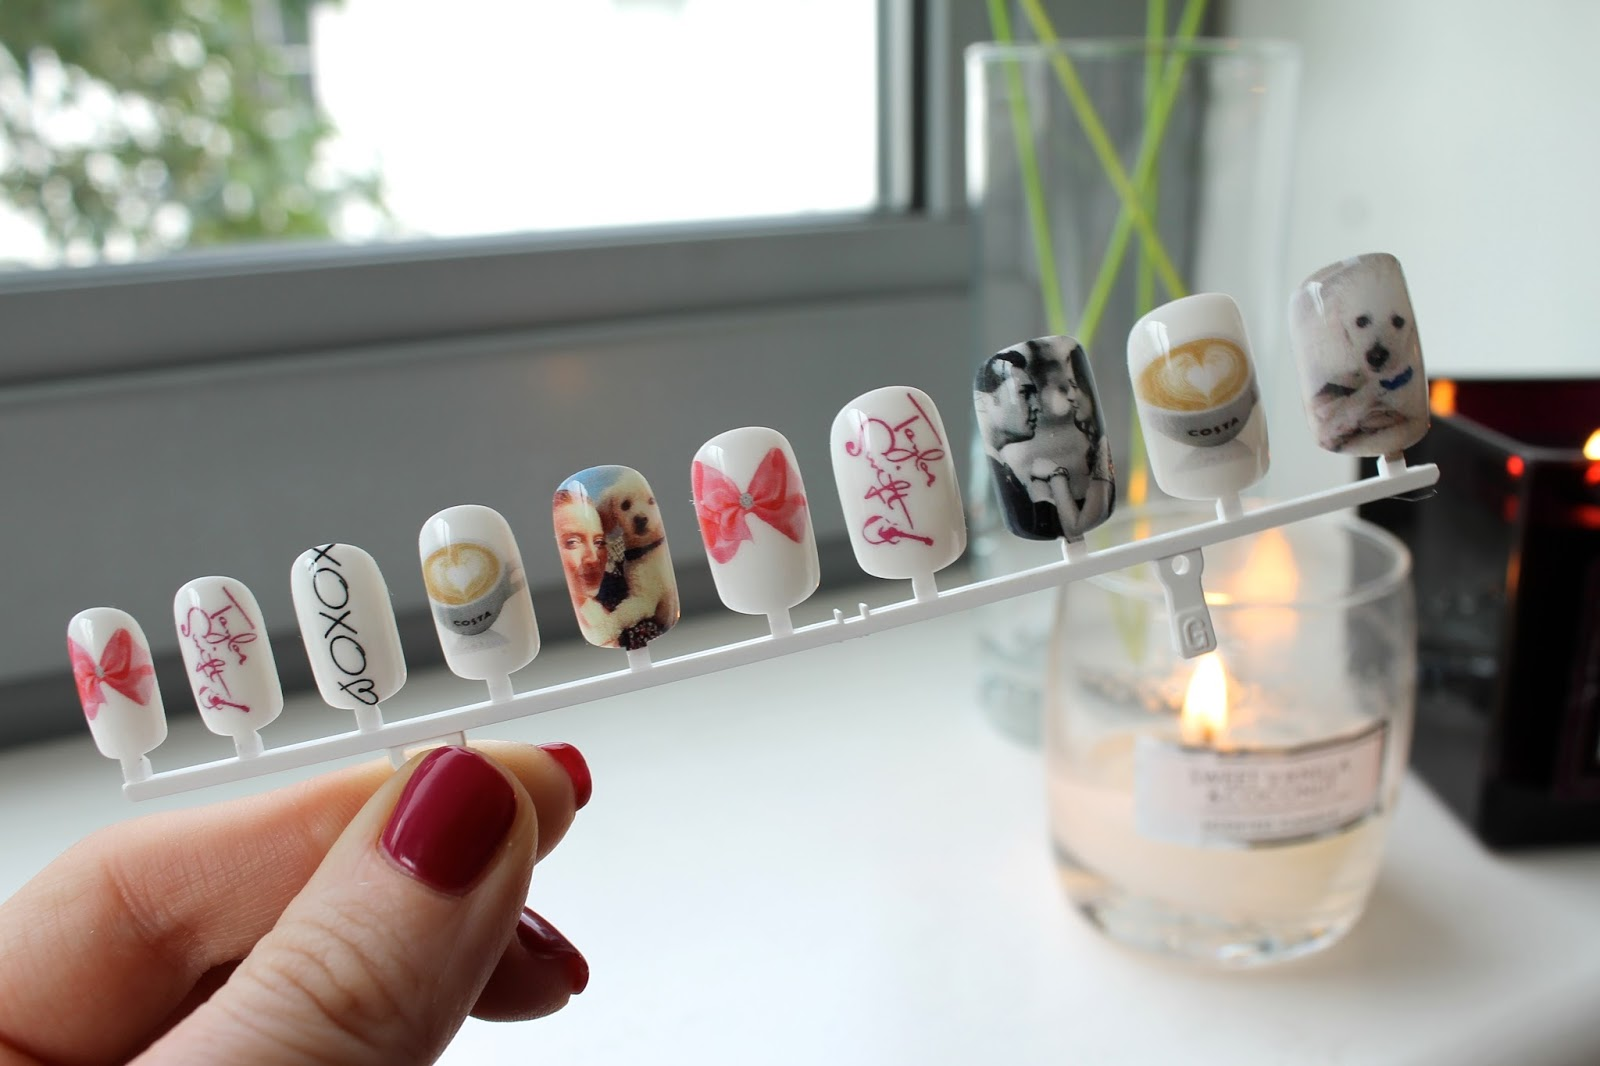 Bec Boop's custom set of Art Pro Nails